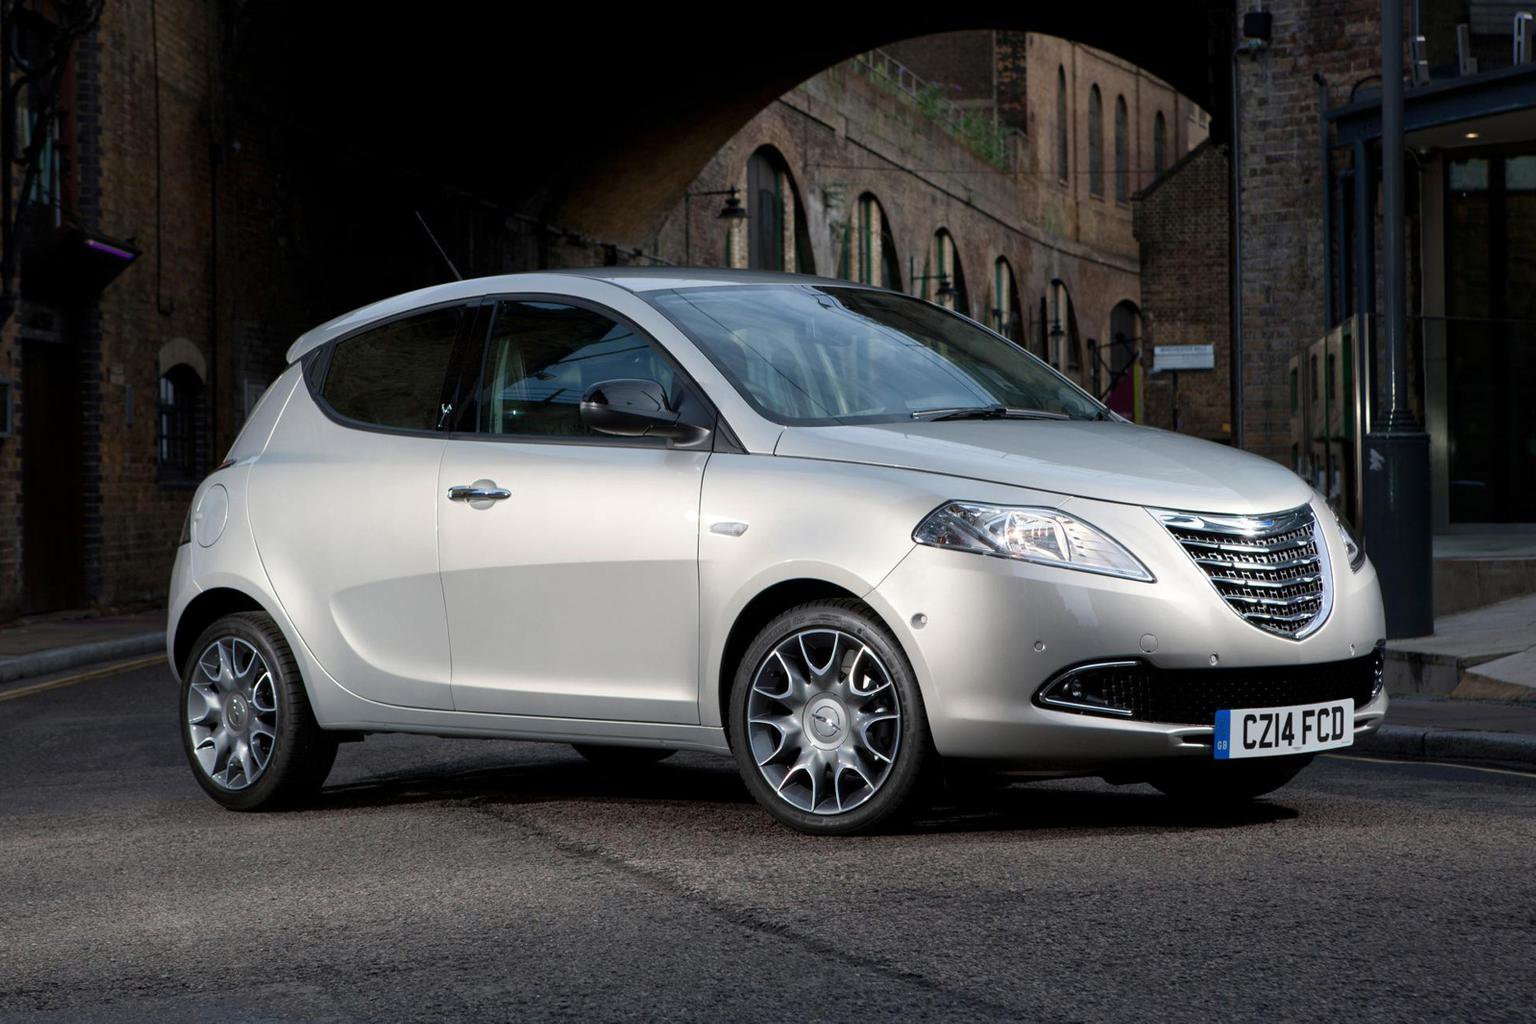 2014 Chrysler Ypsilon prices announced